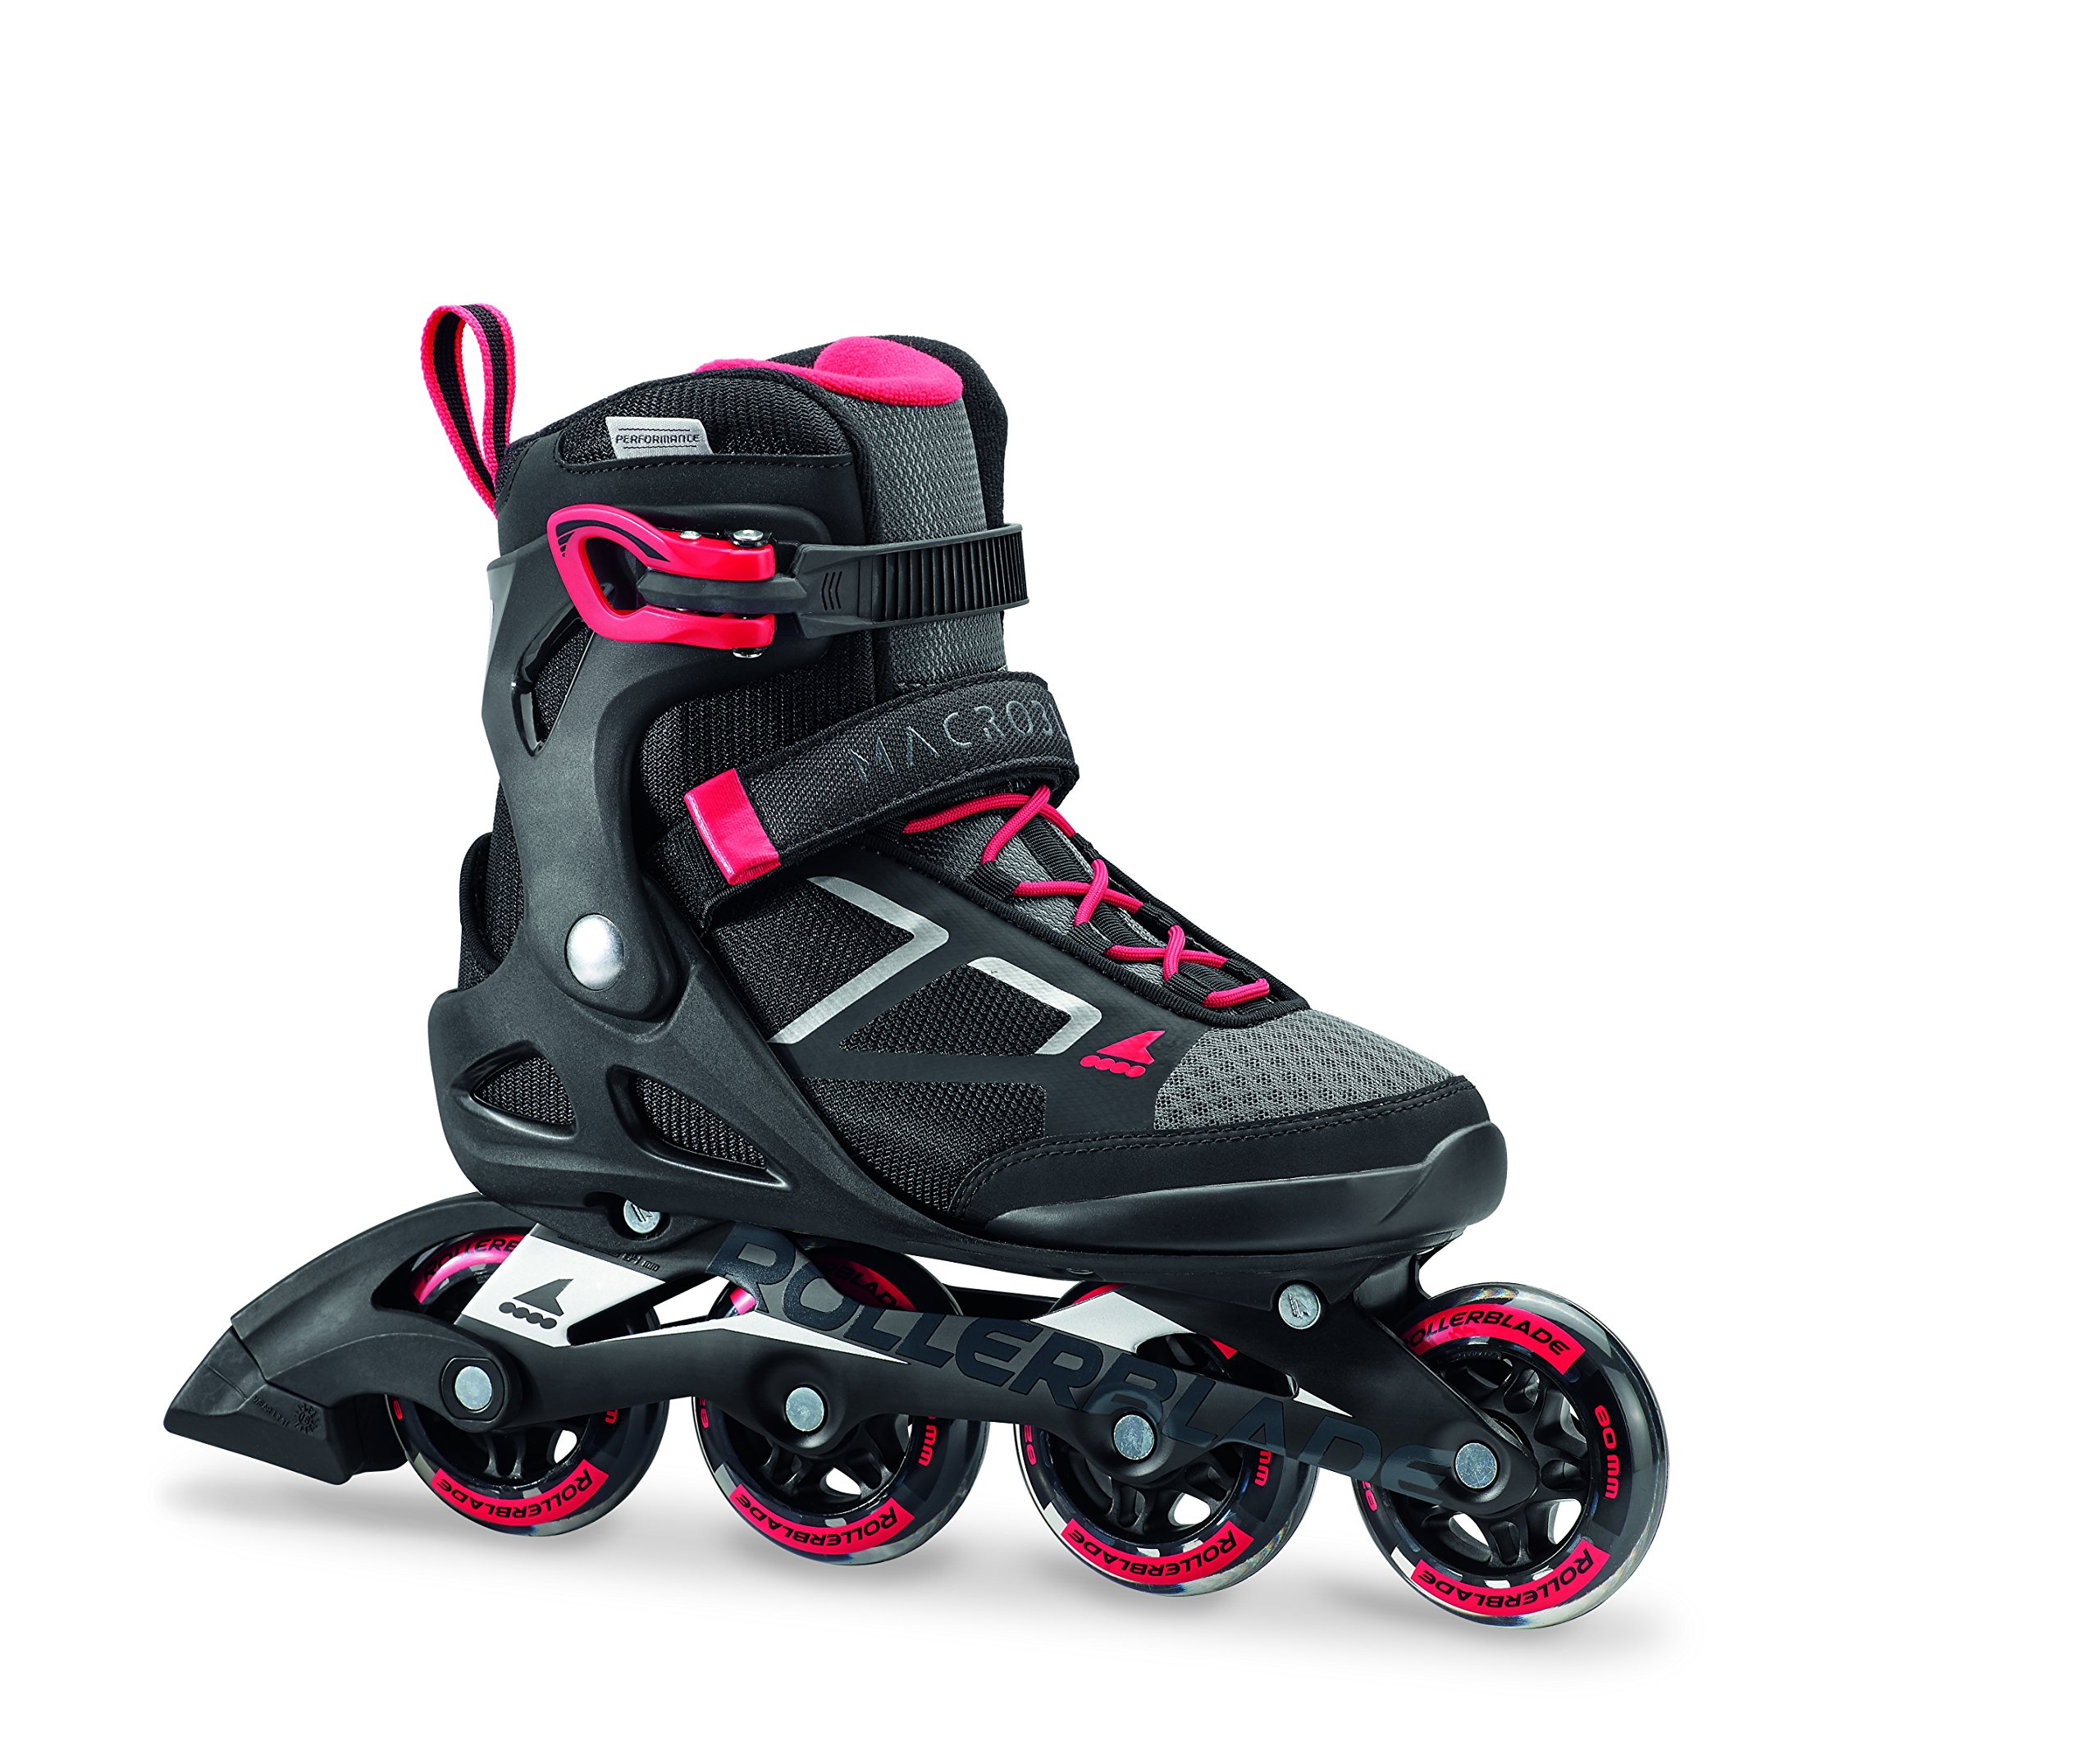 Rollerblade Macroblade 80 Women's Adult Fitness Inline Skate, Black and Pink, Performance Inline Skates by Rollerblade (Image #1)